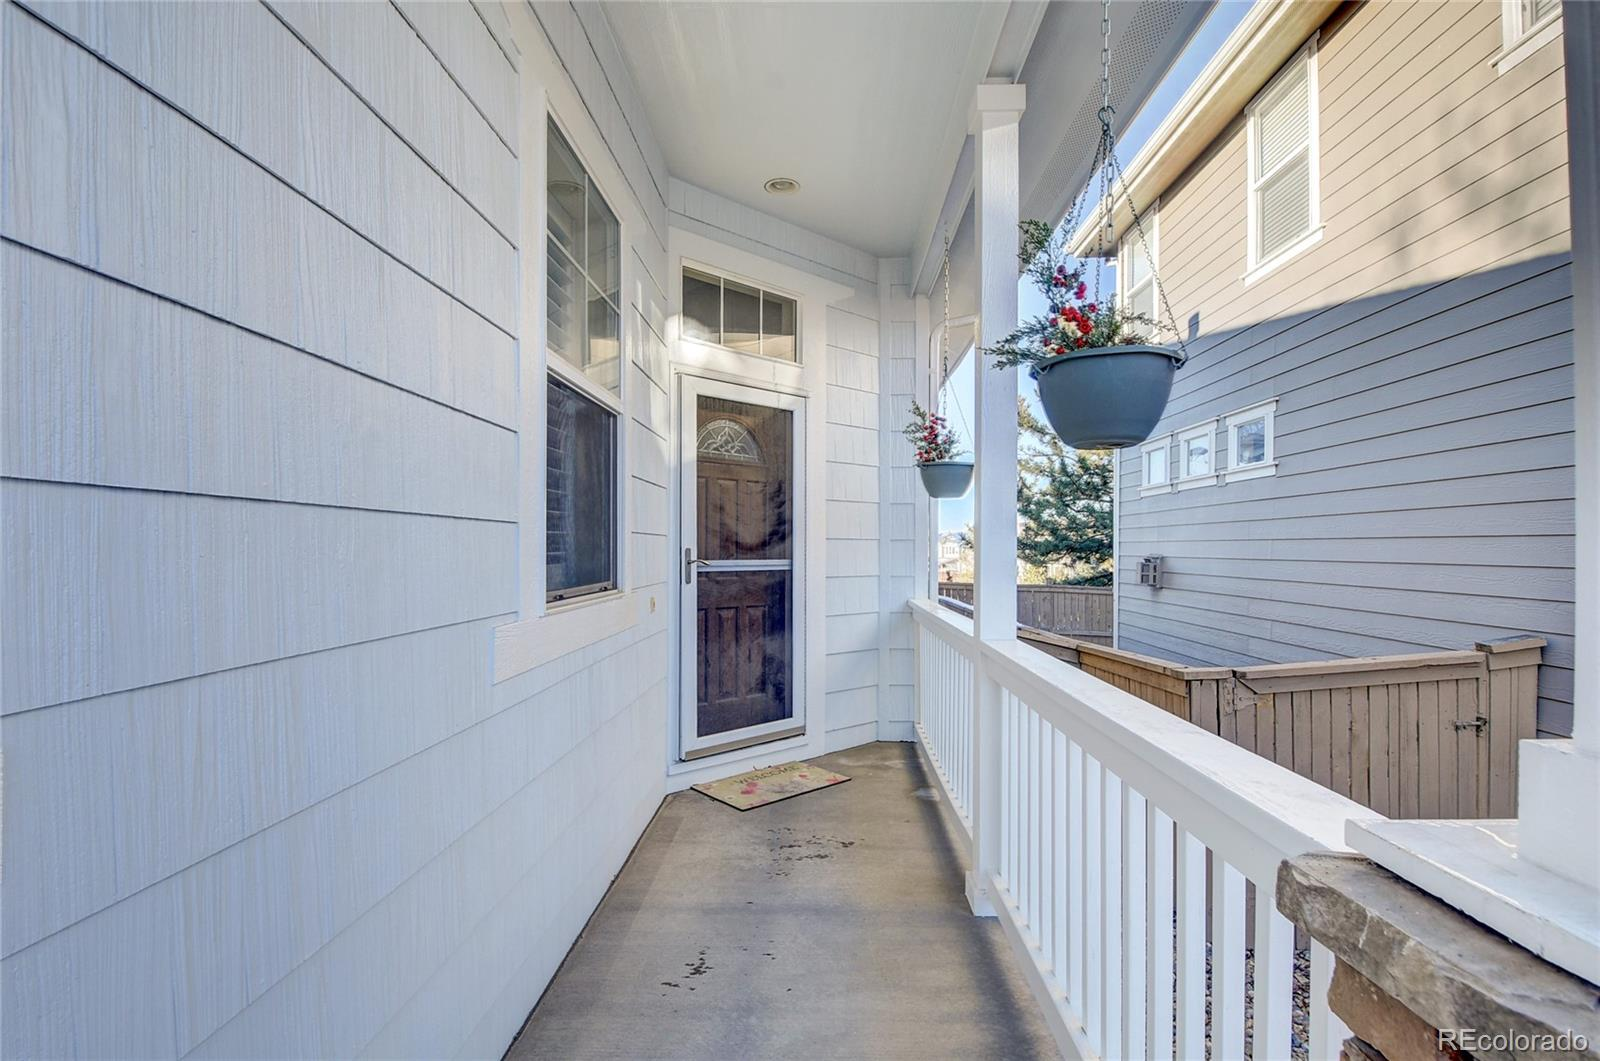 MLS# 6360939 - 3 - 10581 Pearlwood Circle, Highlands Ranch, CO 80126